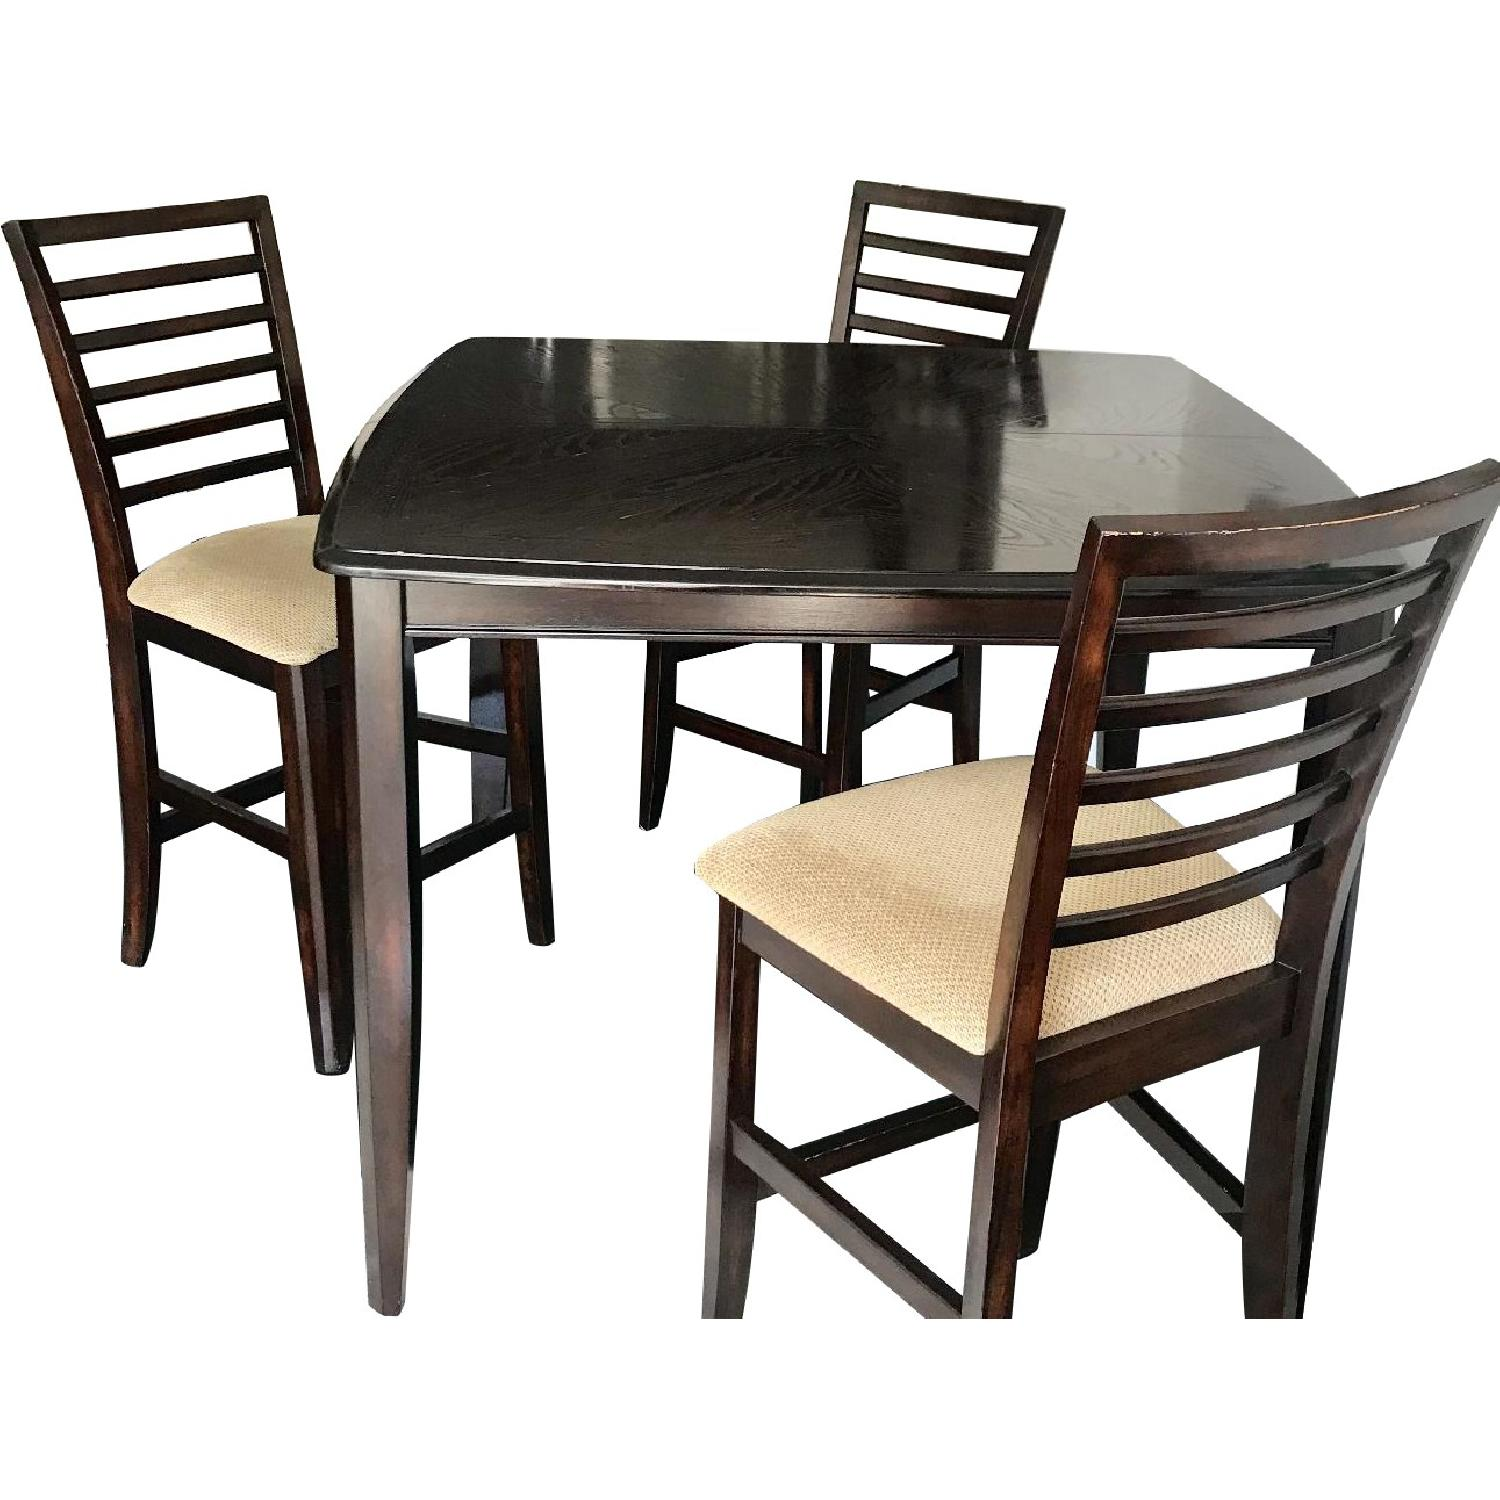 Wood Dining Table, Bar Height, Solid Wood - per set of 7